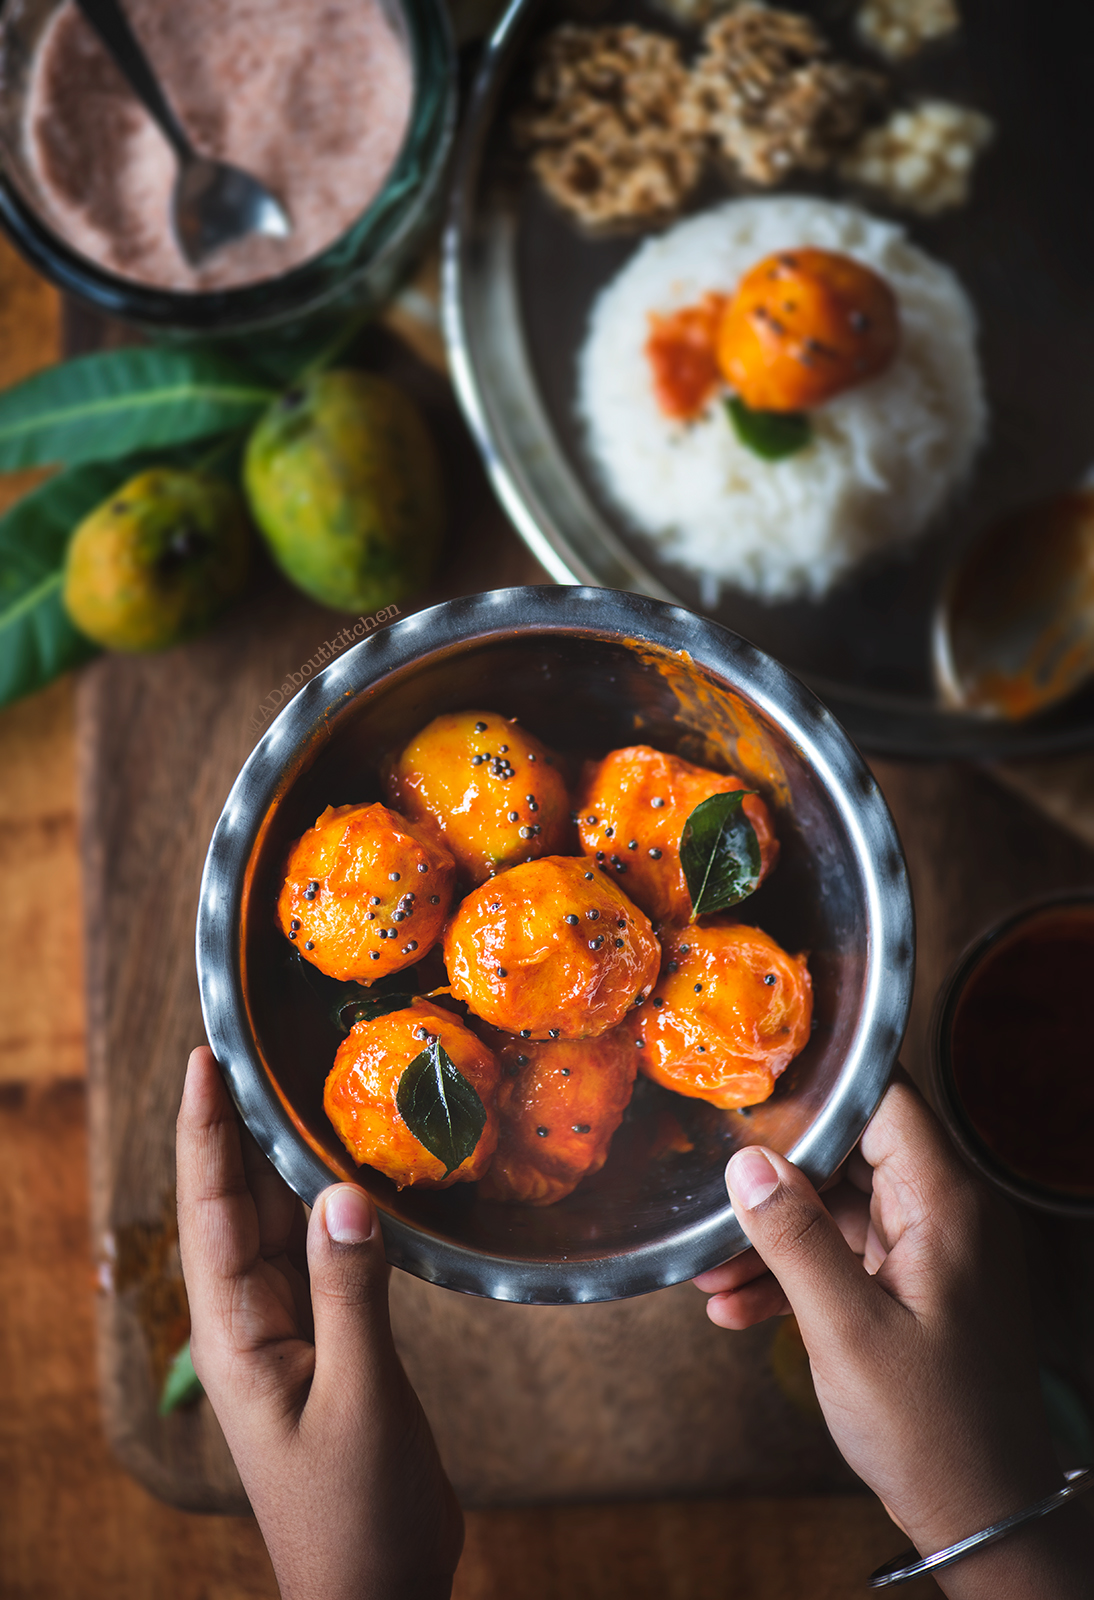 Maavina hannu khara made using small magoes is the a rustic, instant mango curry yet the most yummiest dish that can be had with rice or enjoyed on its own.